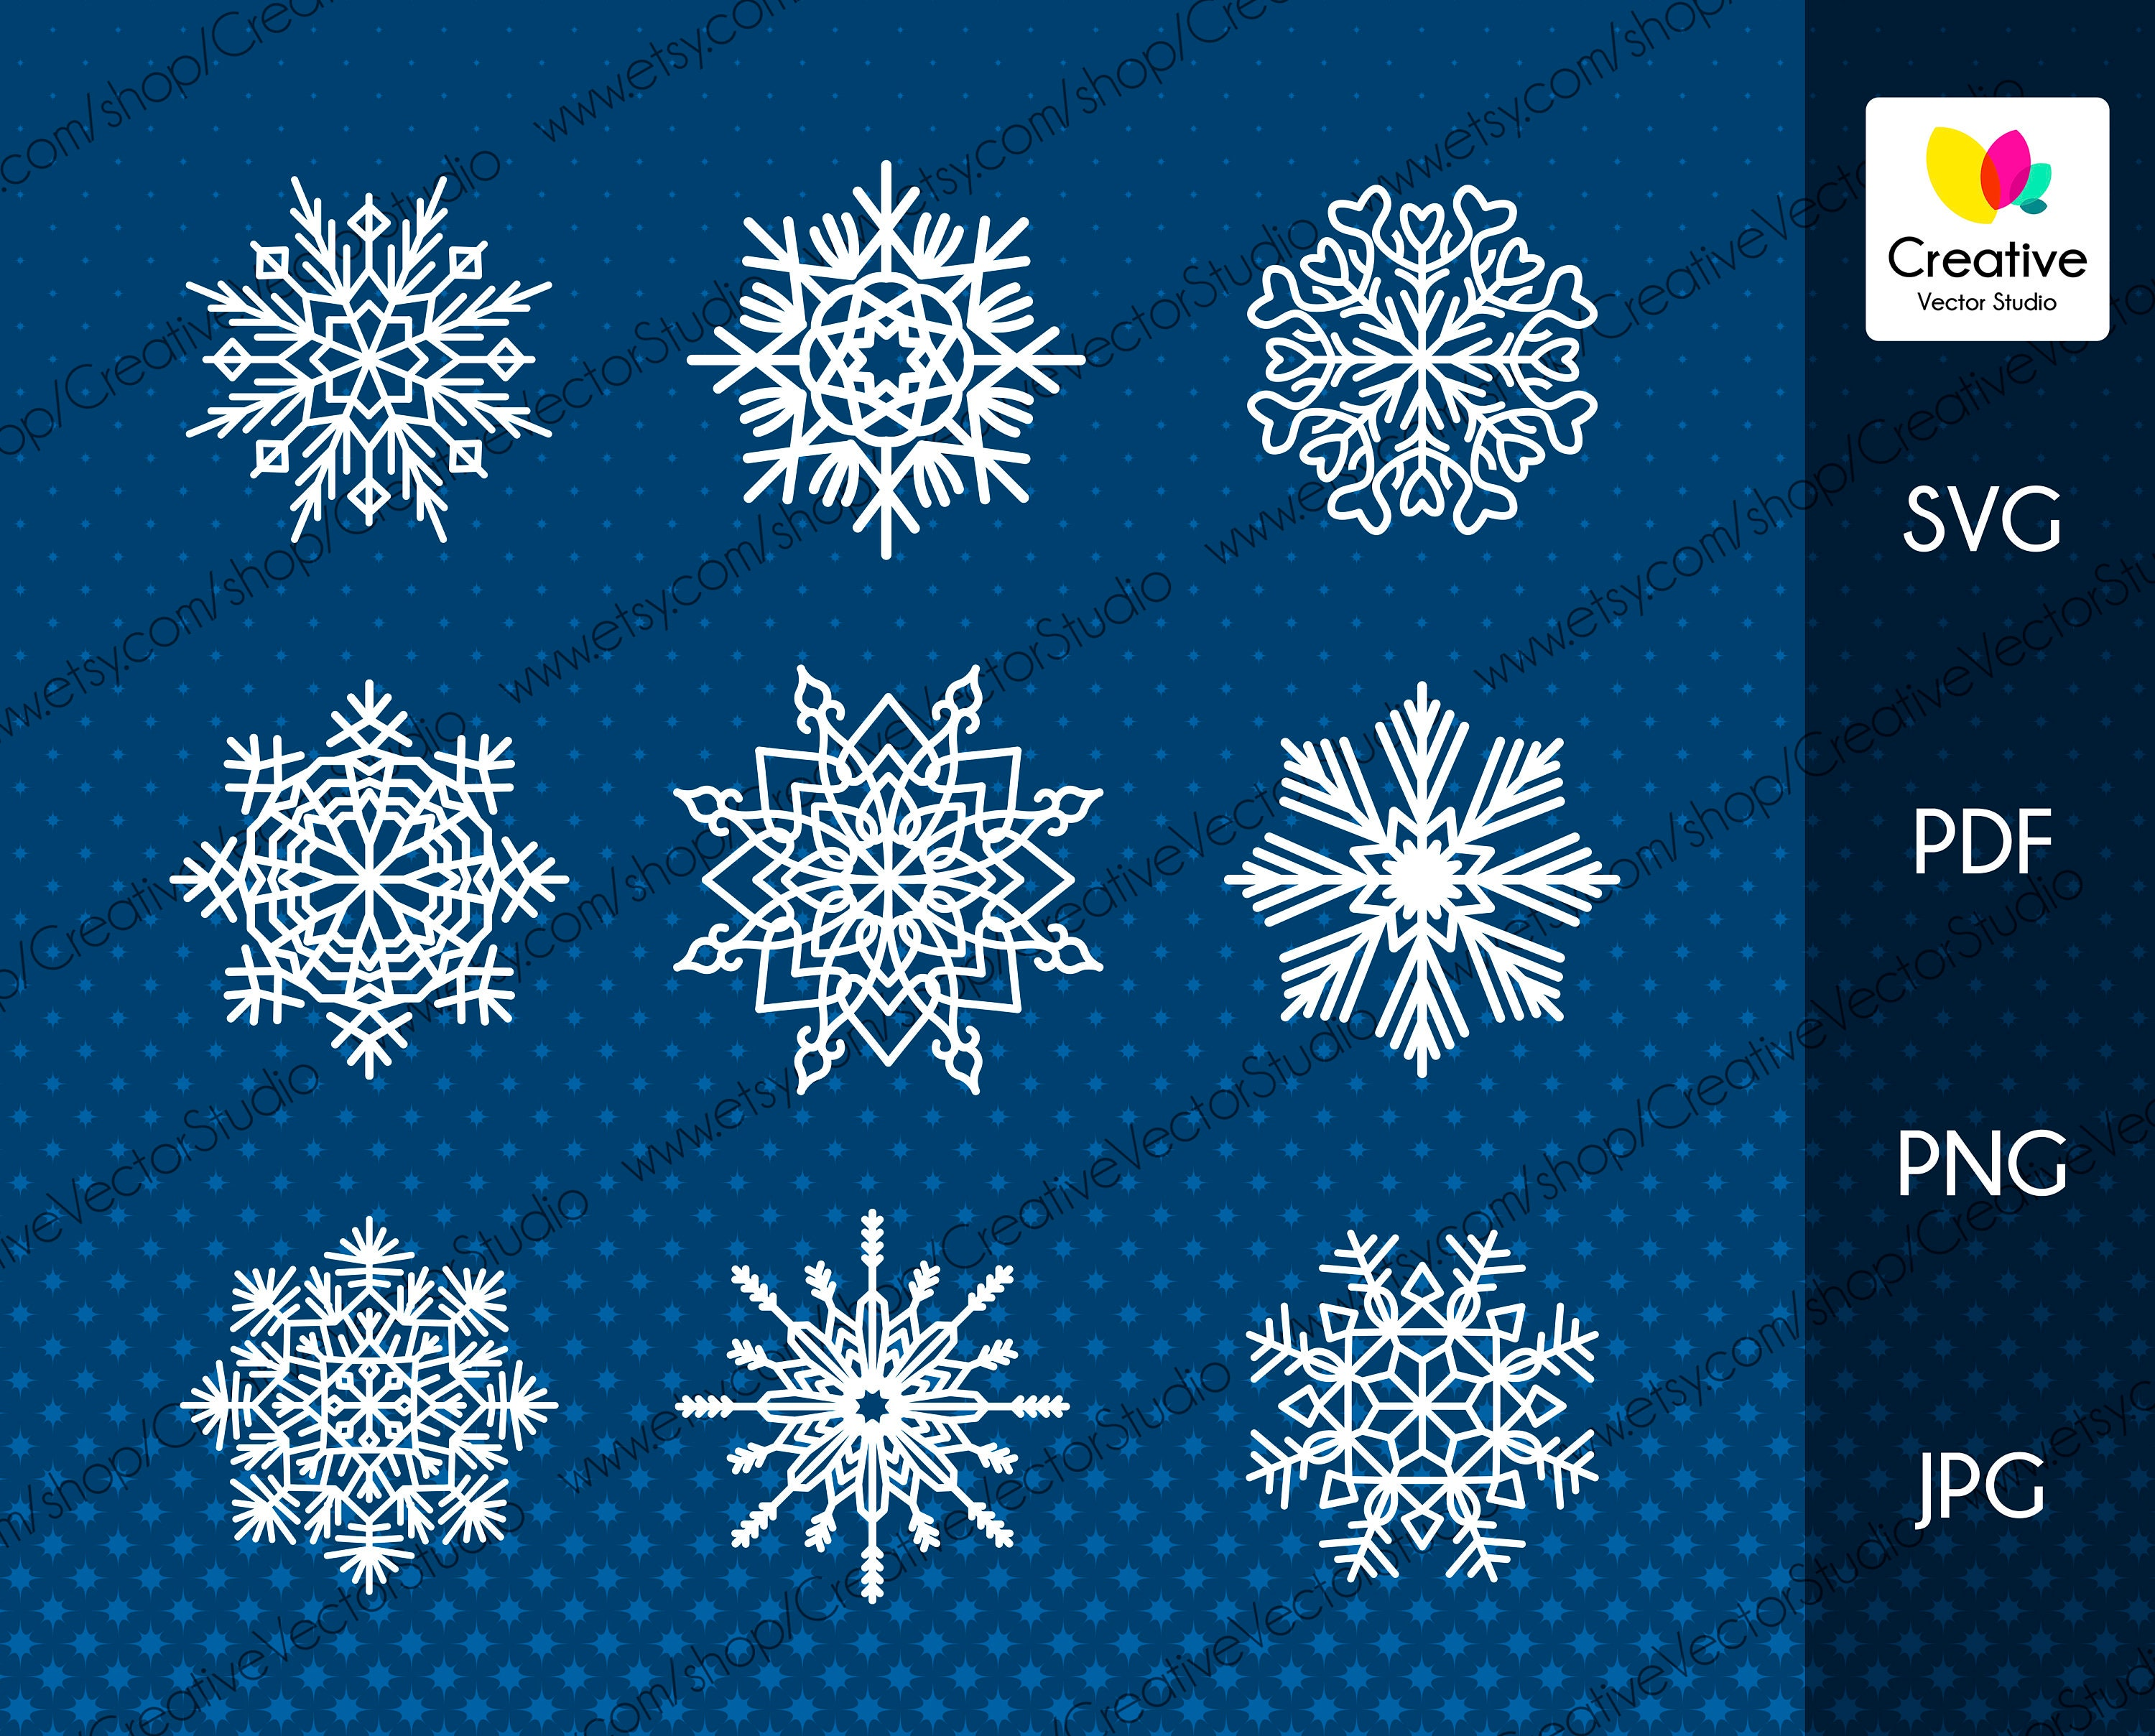 Snowflakes Svg Snowflake Clipart Flake Of Snow Svg Winter Etsy